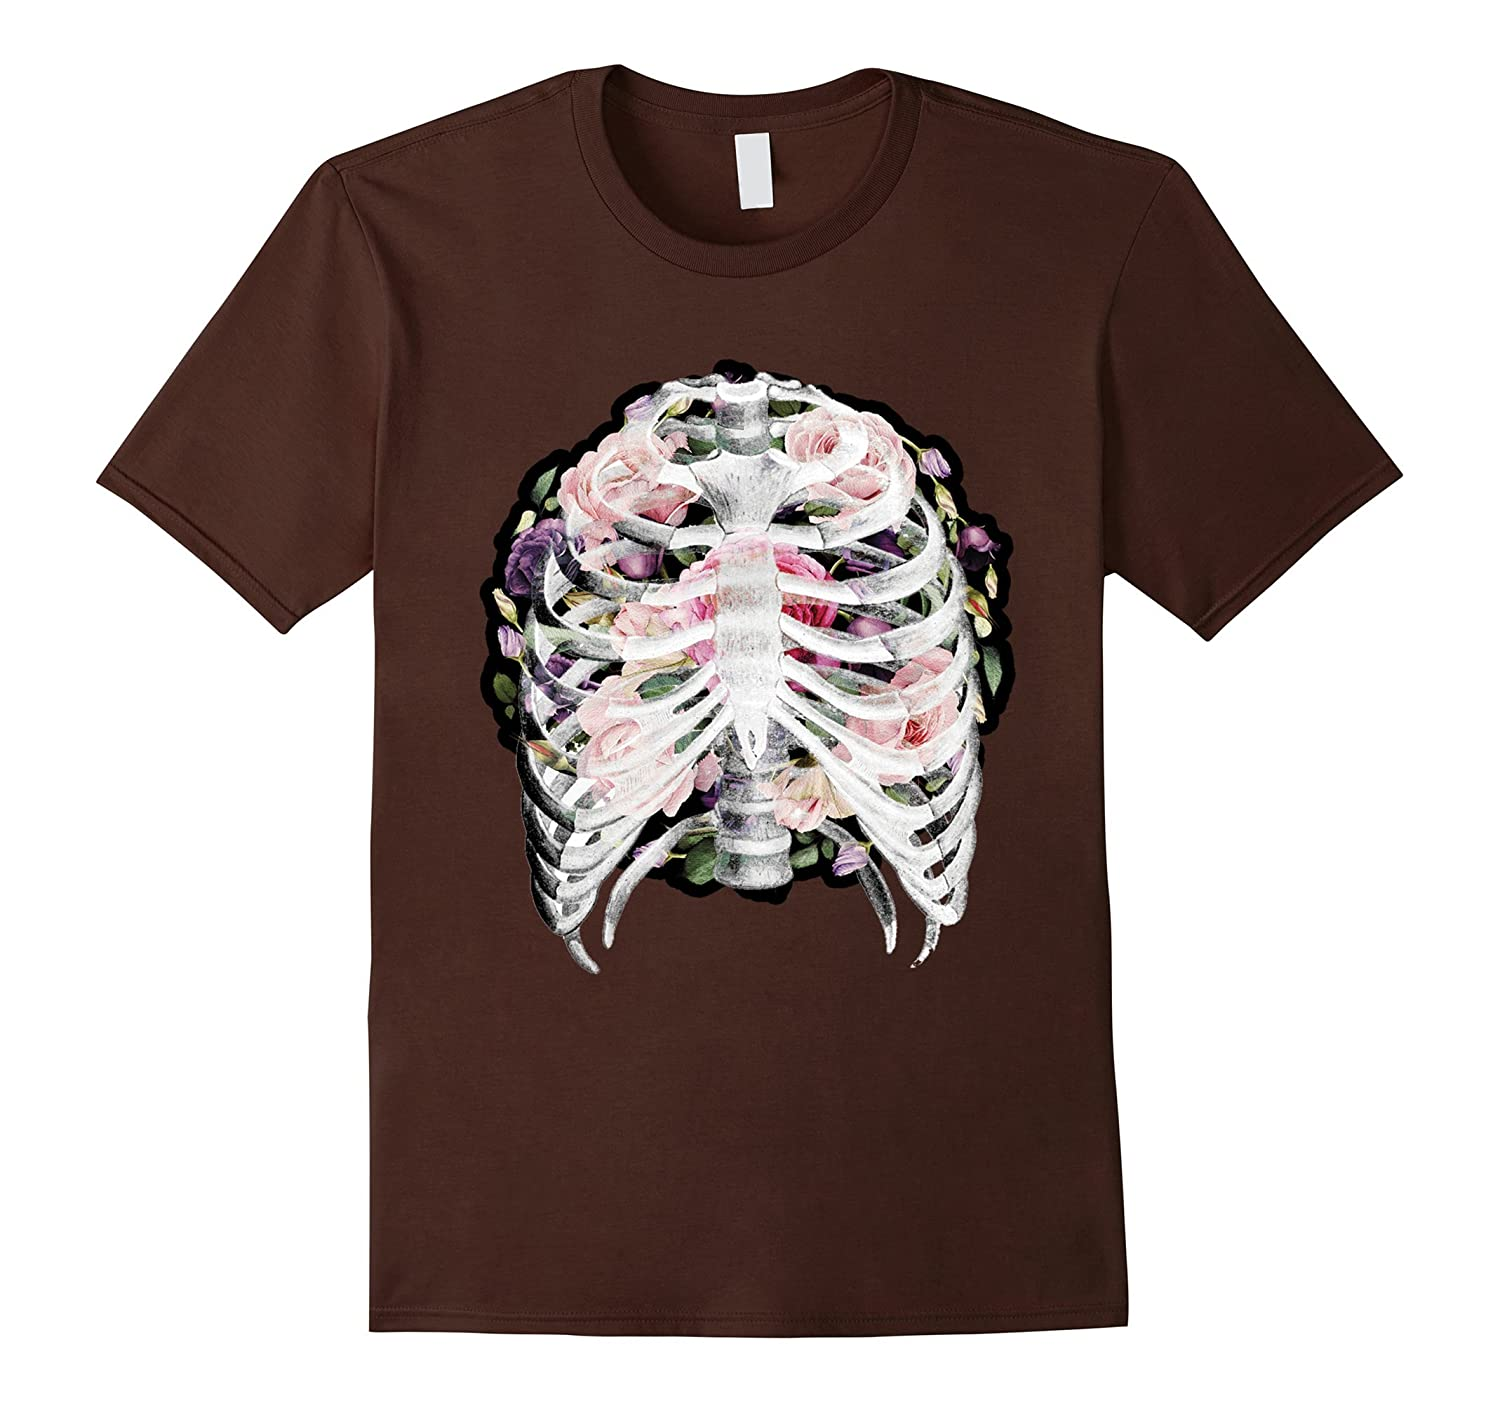 Flower Skull T-Shirt Sugar with Roses for Women Girls Mens-Veotee